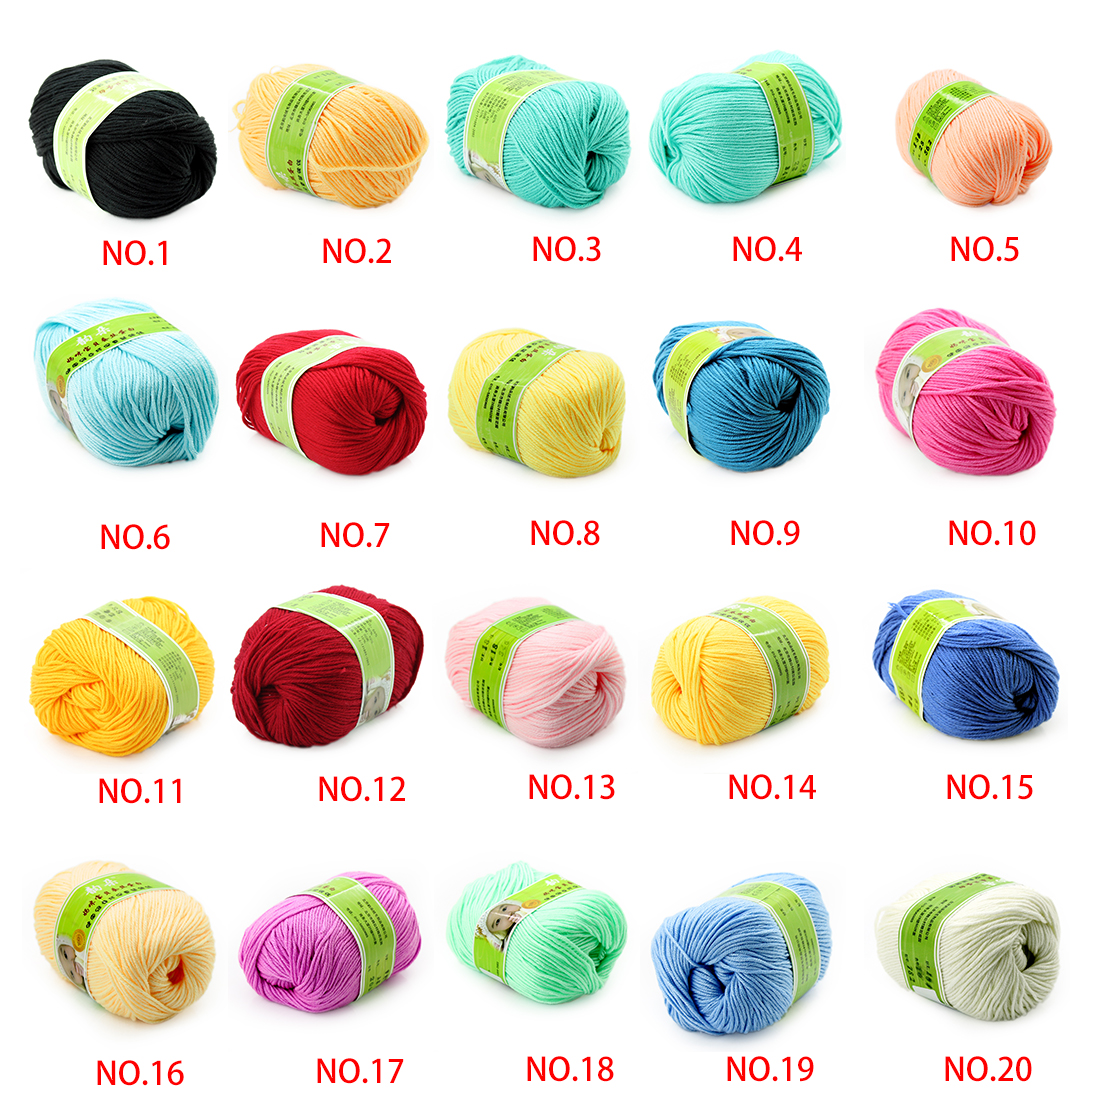 how to buy online silk yarn from china